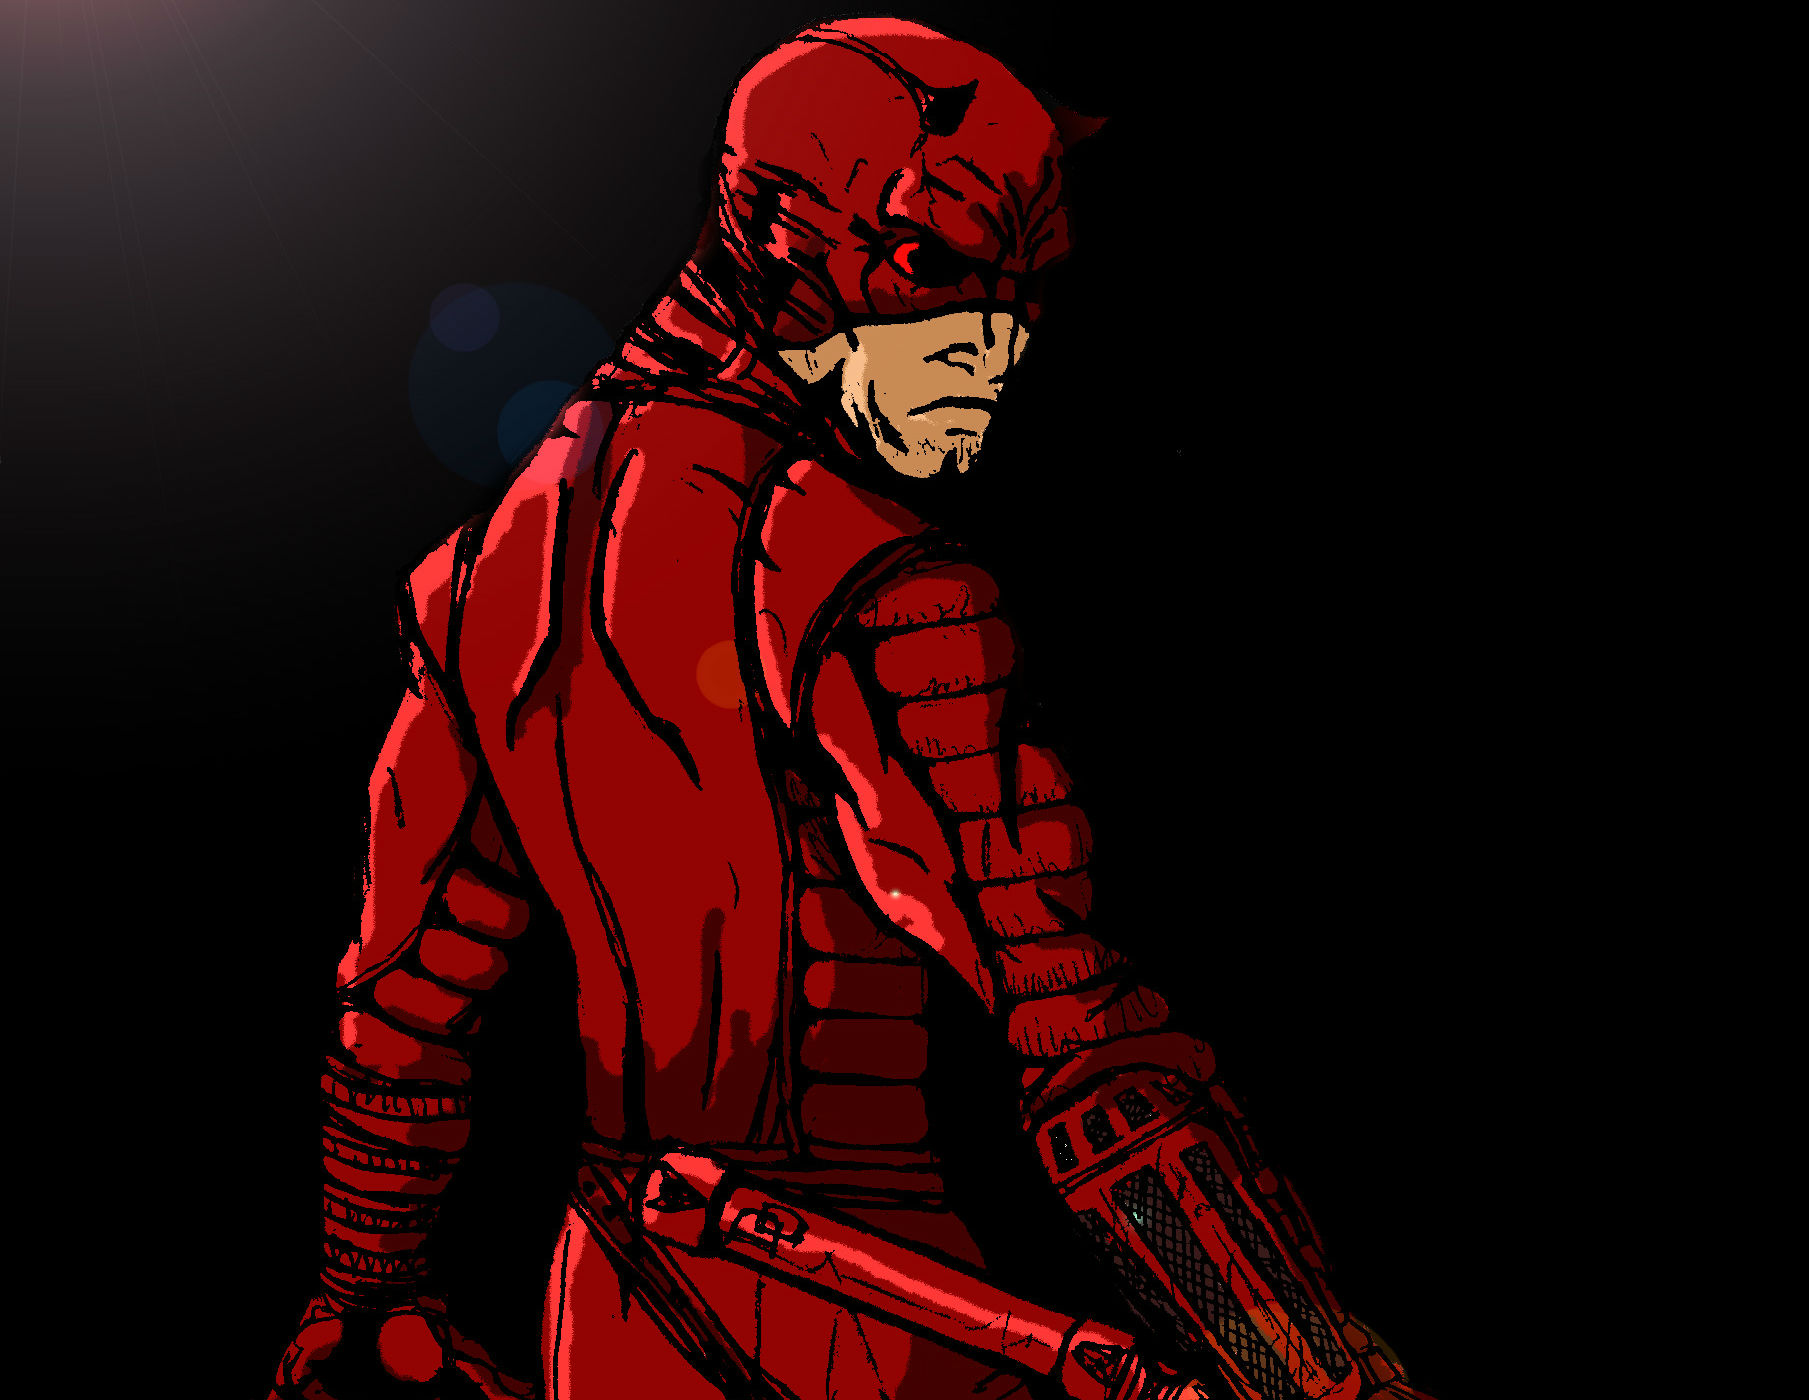 DAREDEVIL marvel superhero t wallpaper 1809x1400 138220 1809x1400